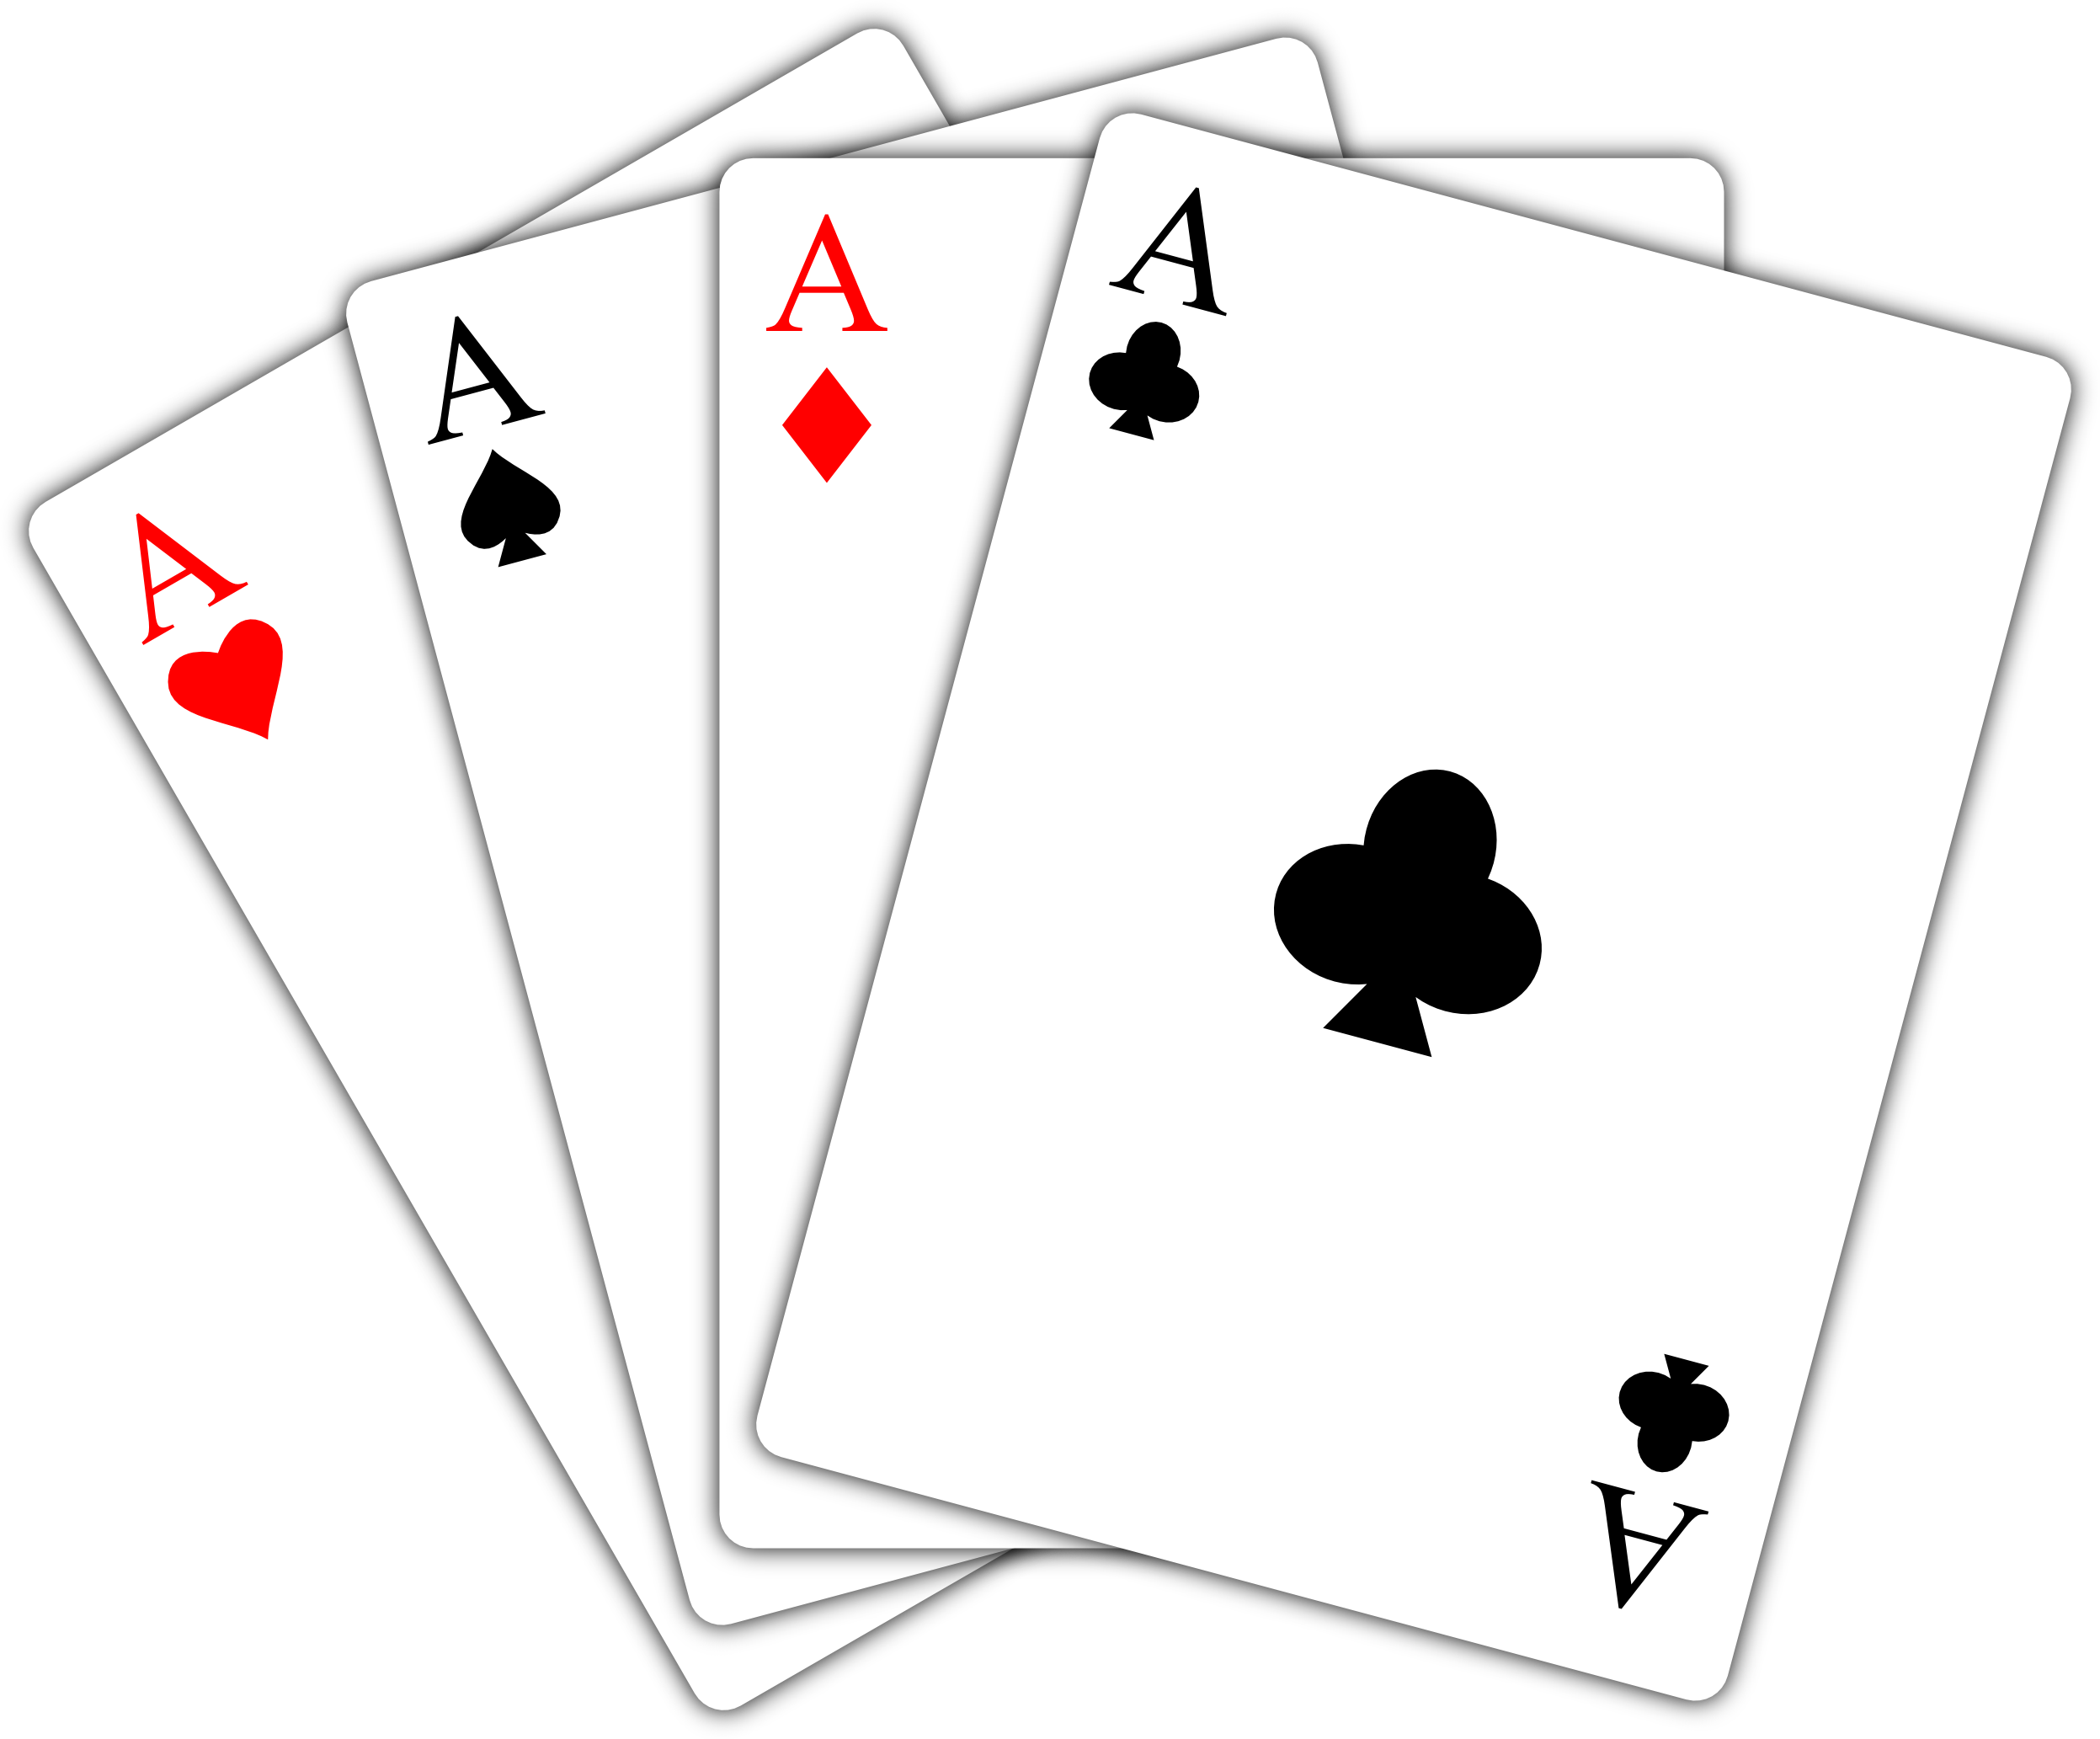 playing_cards_by_fluffgard32tbch.png 2,494×2,065 pixels